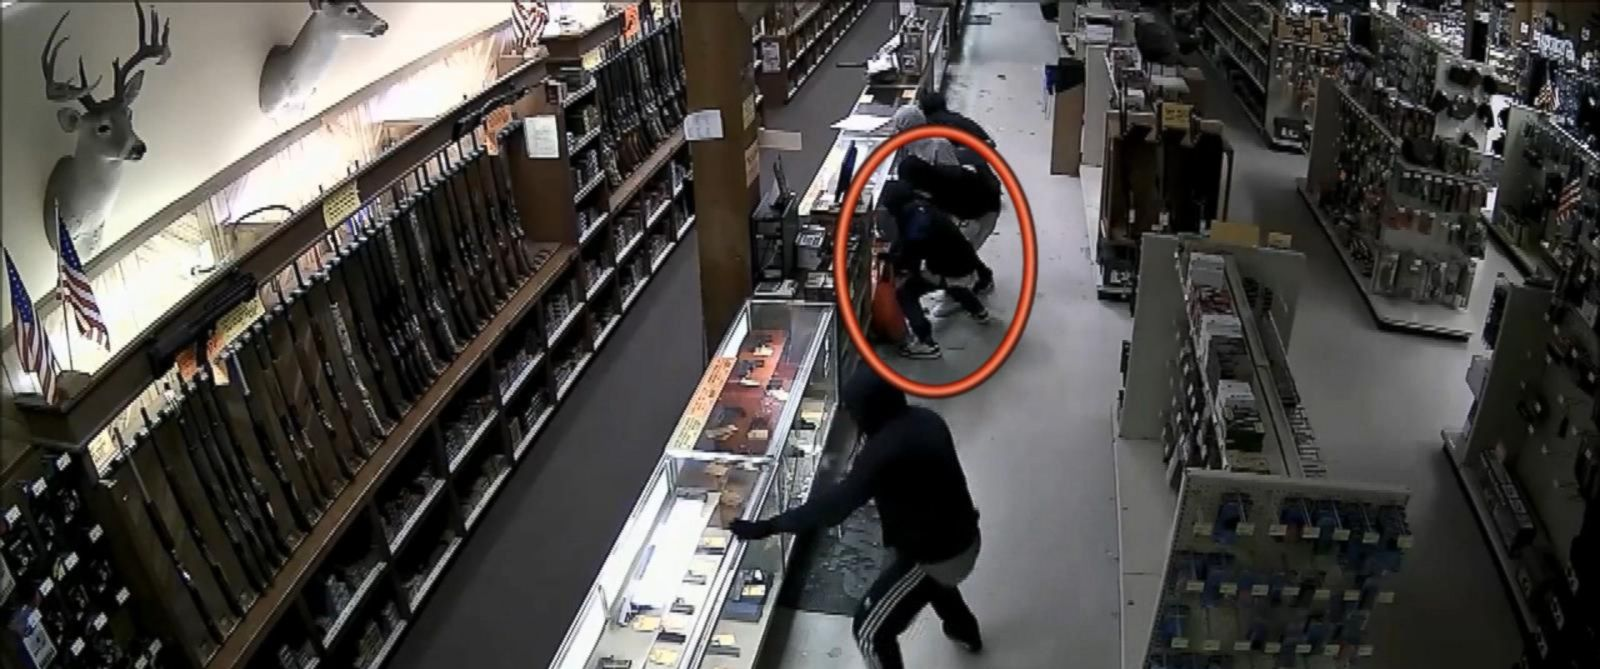 The Security Store Houston Security Camera Footage Shows Gang Looting Gun Store - Abc